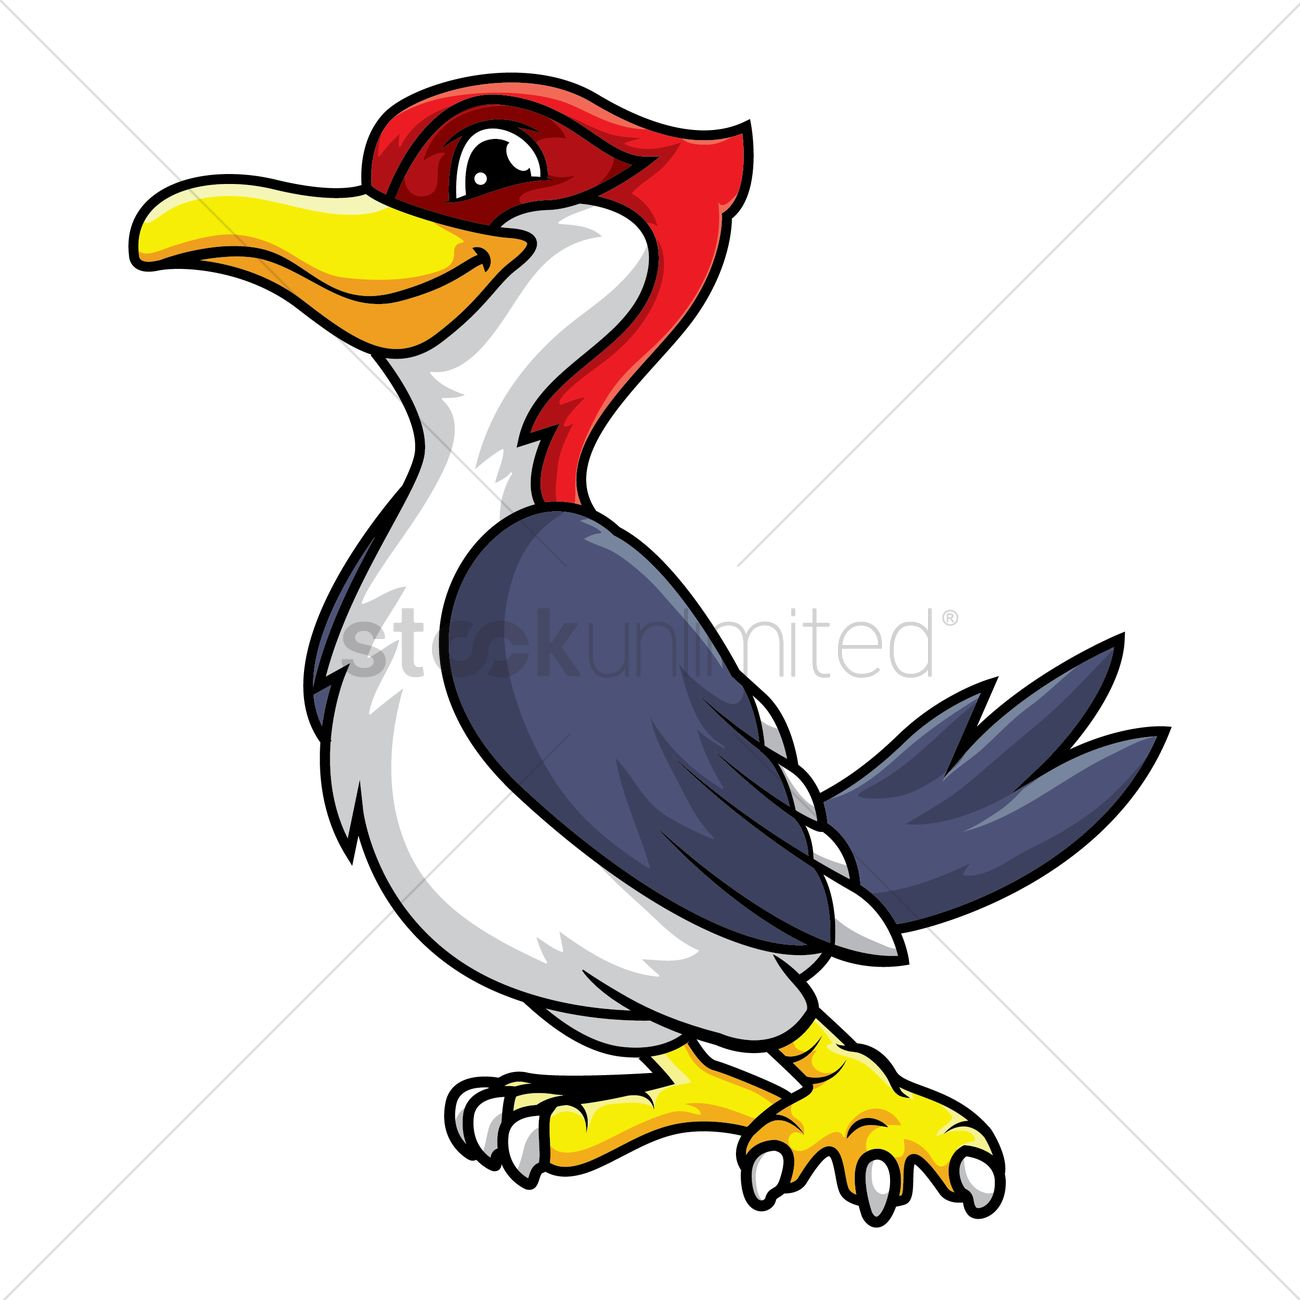 Red-Crested Cardinal clipart #12, Download drawings